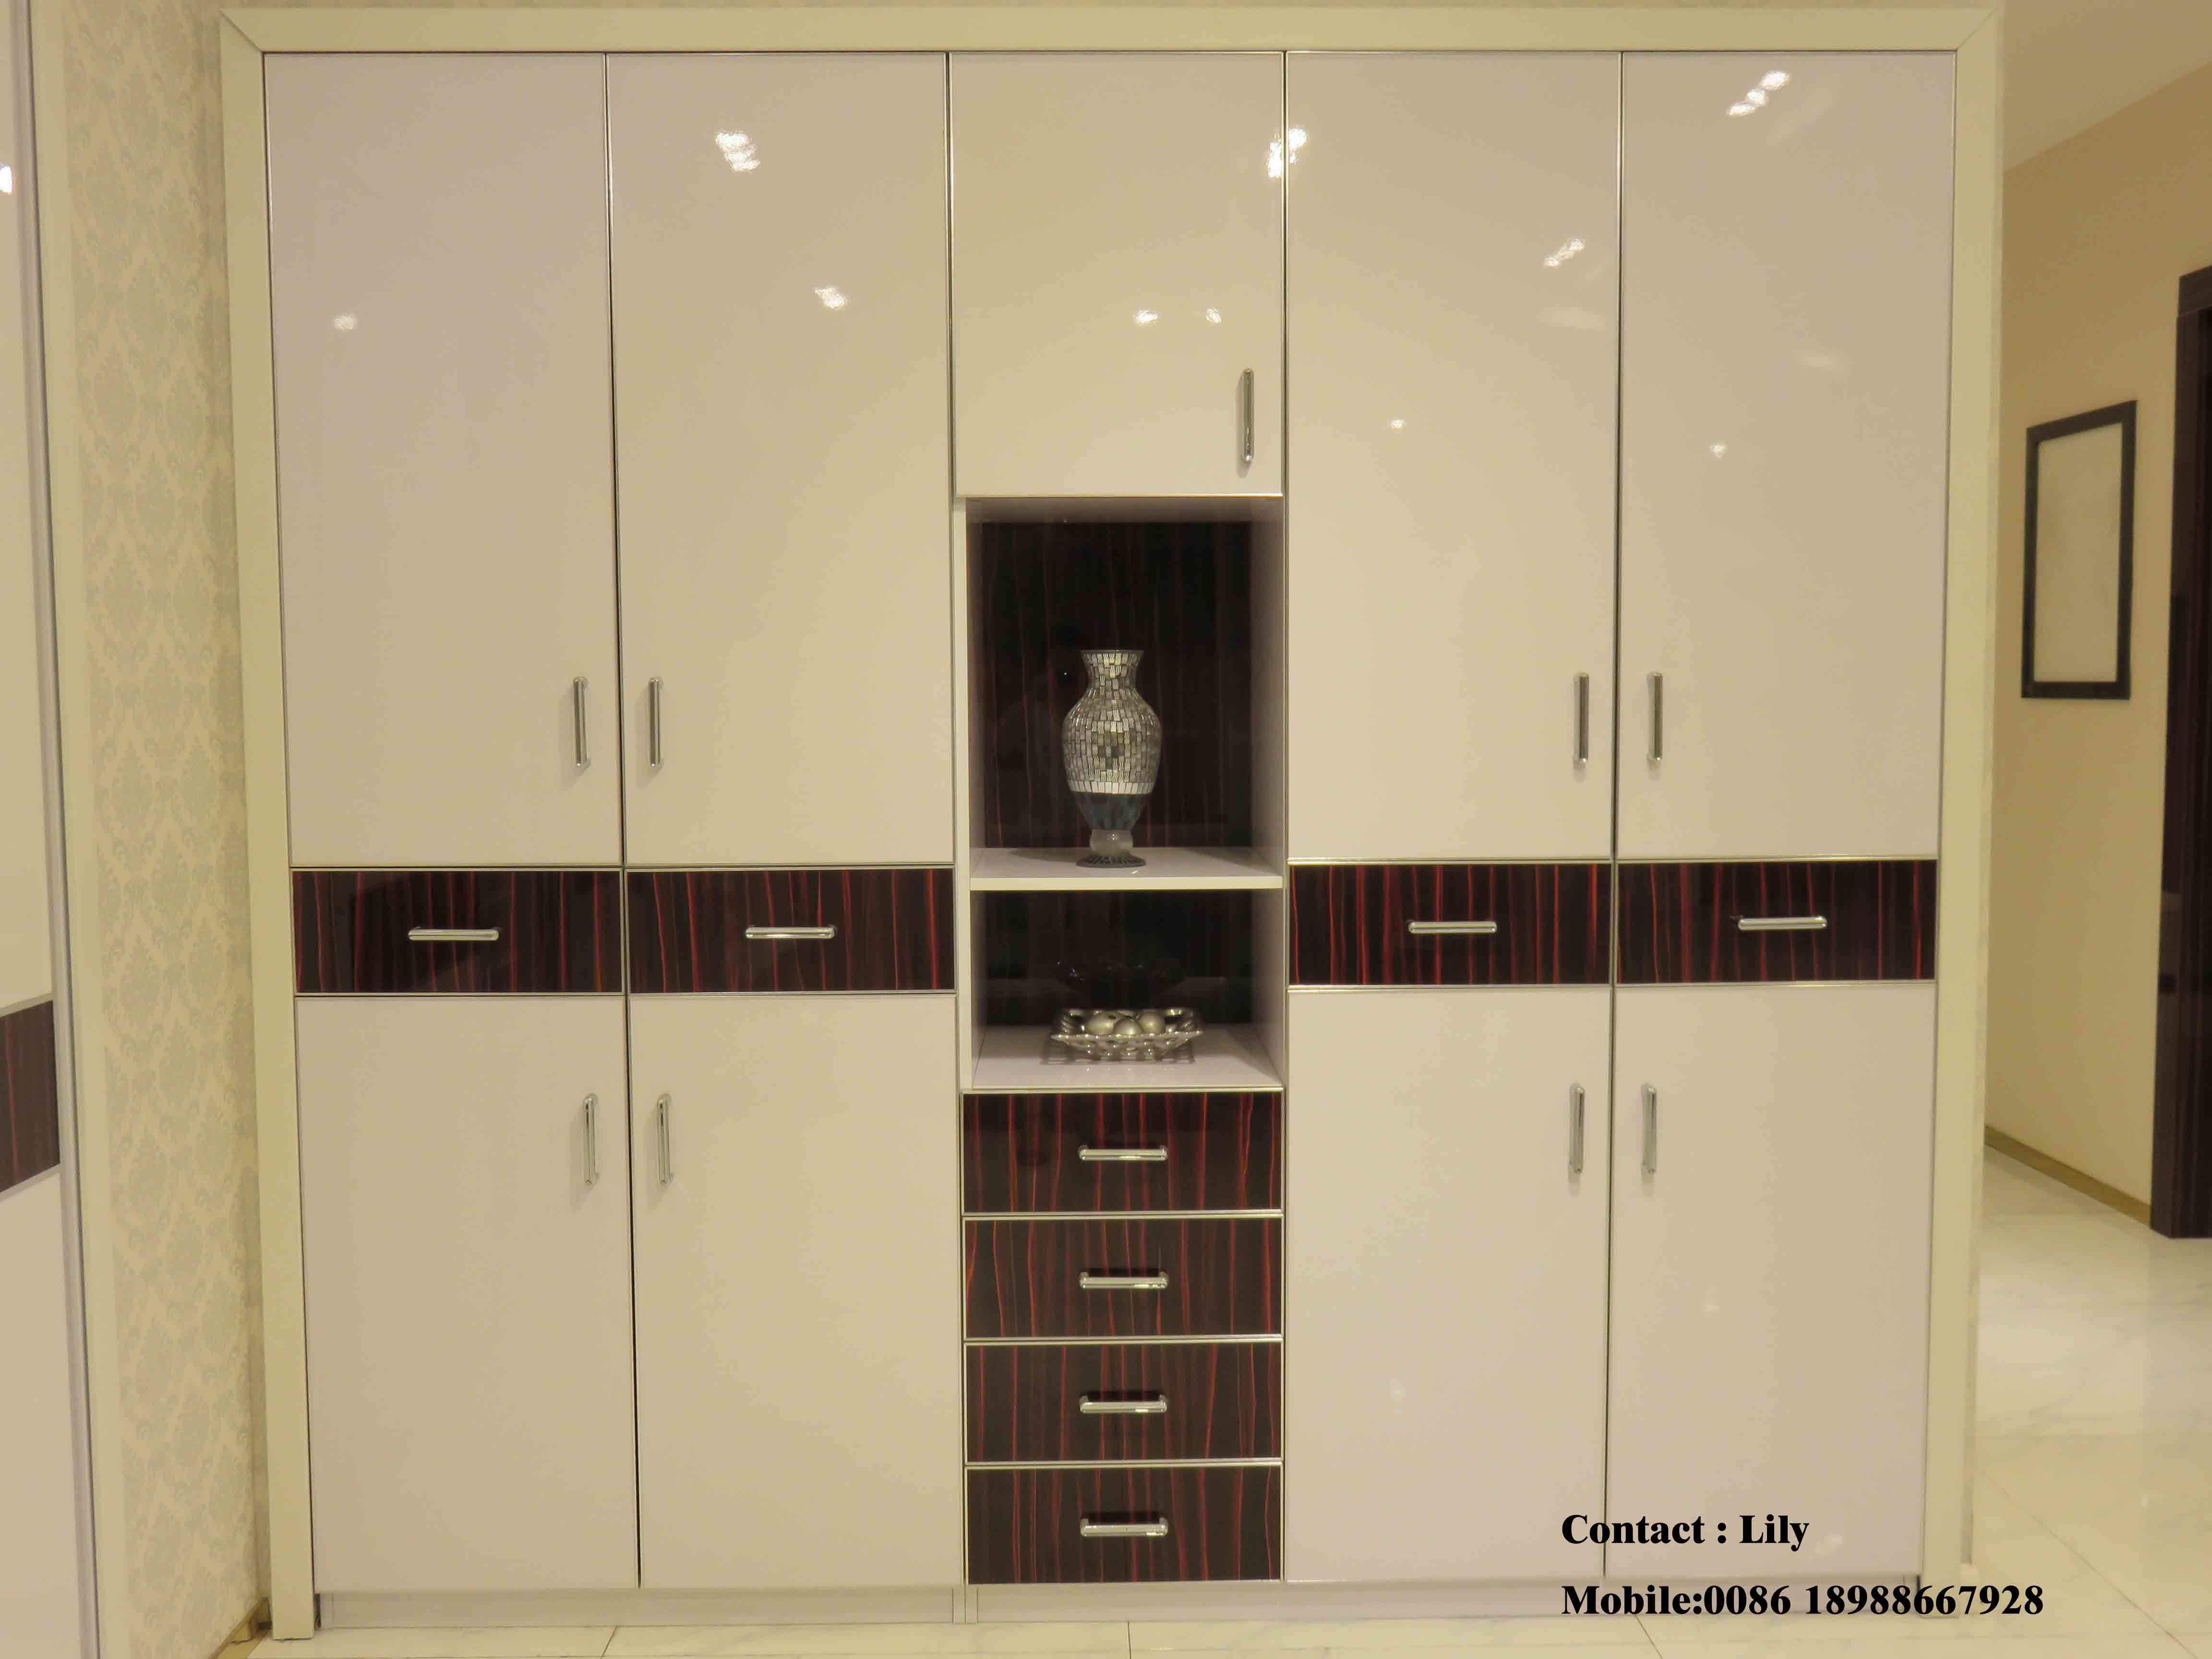 wholesaler trip ready your delivery locker door all trading subject gst half cabinet projects the price sliding pte ltd if wardrobe metal purchase kaimay less than to height stock